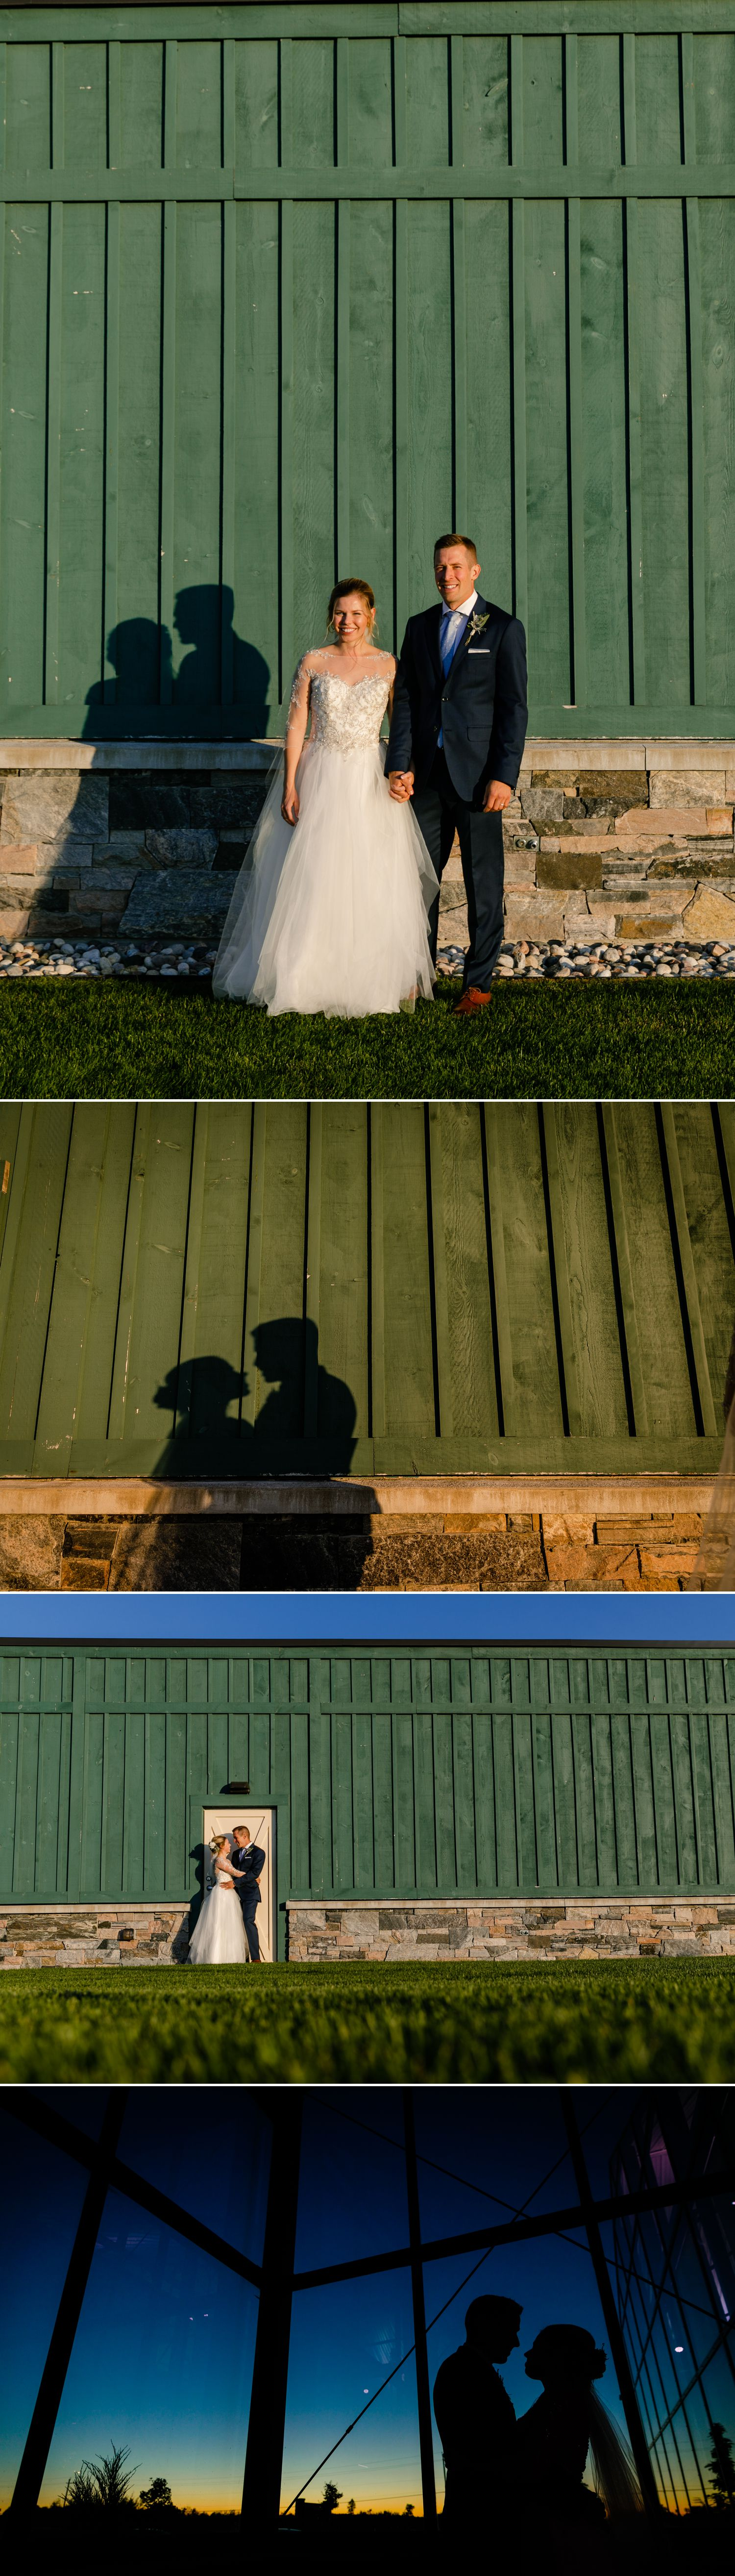 Portraits of the bride and groom during their wedding reception at Aquatopia